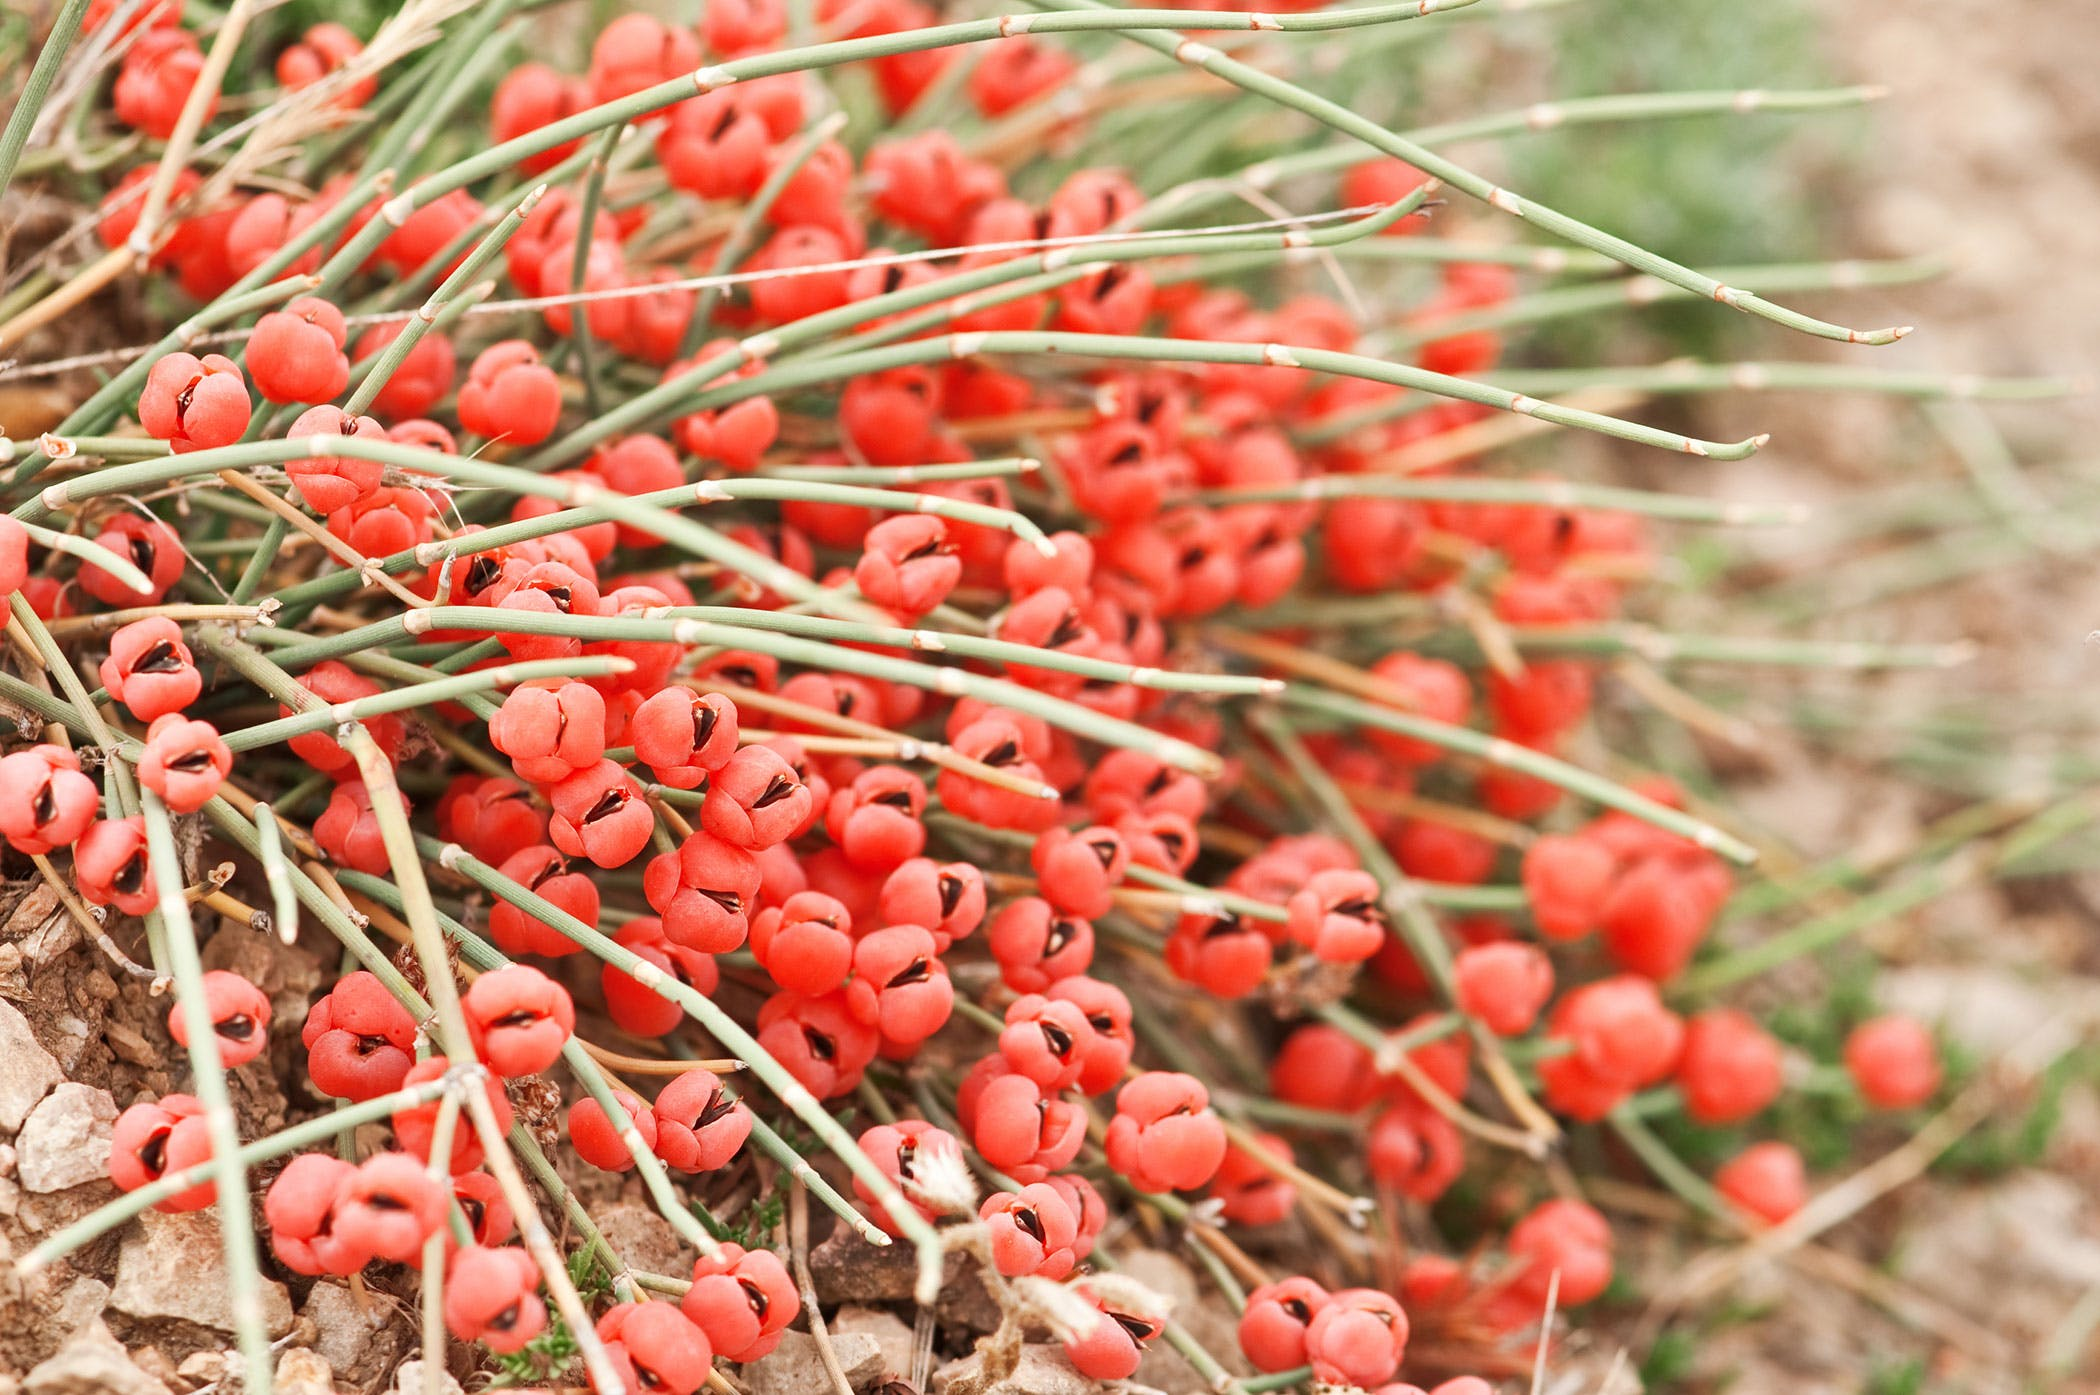 Ephedra Poisoning in Dogs - Symptoms, Causes, Diagnosis